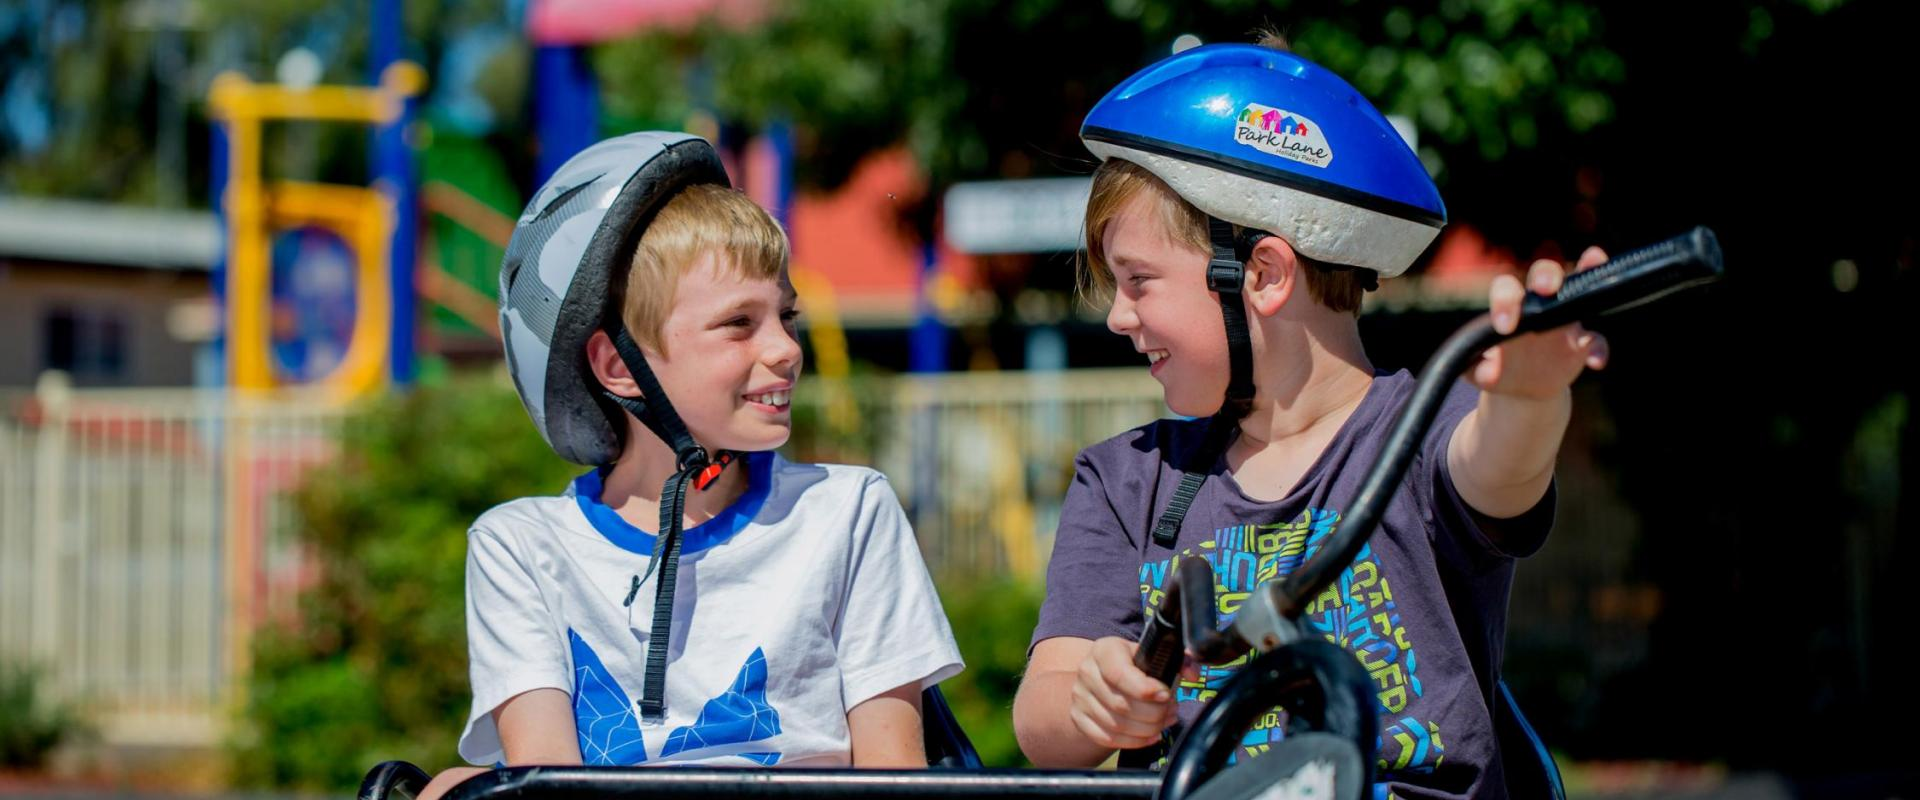 BIG4 Shepparton Park Lane Holiday Park - Boys on Pedal Go Karts